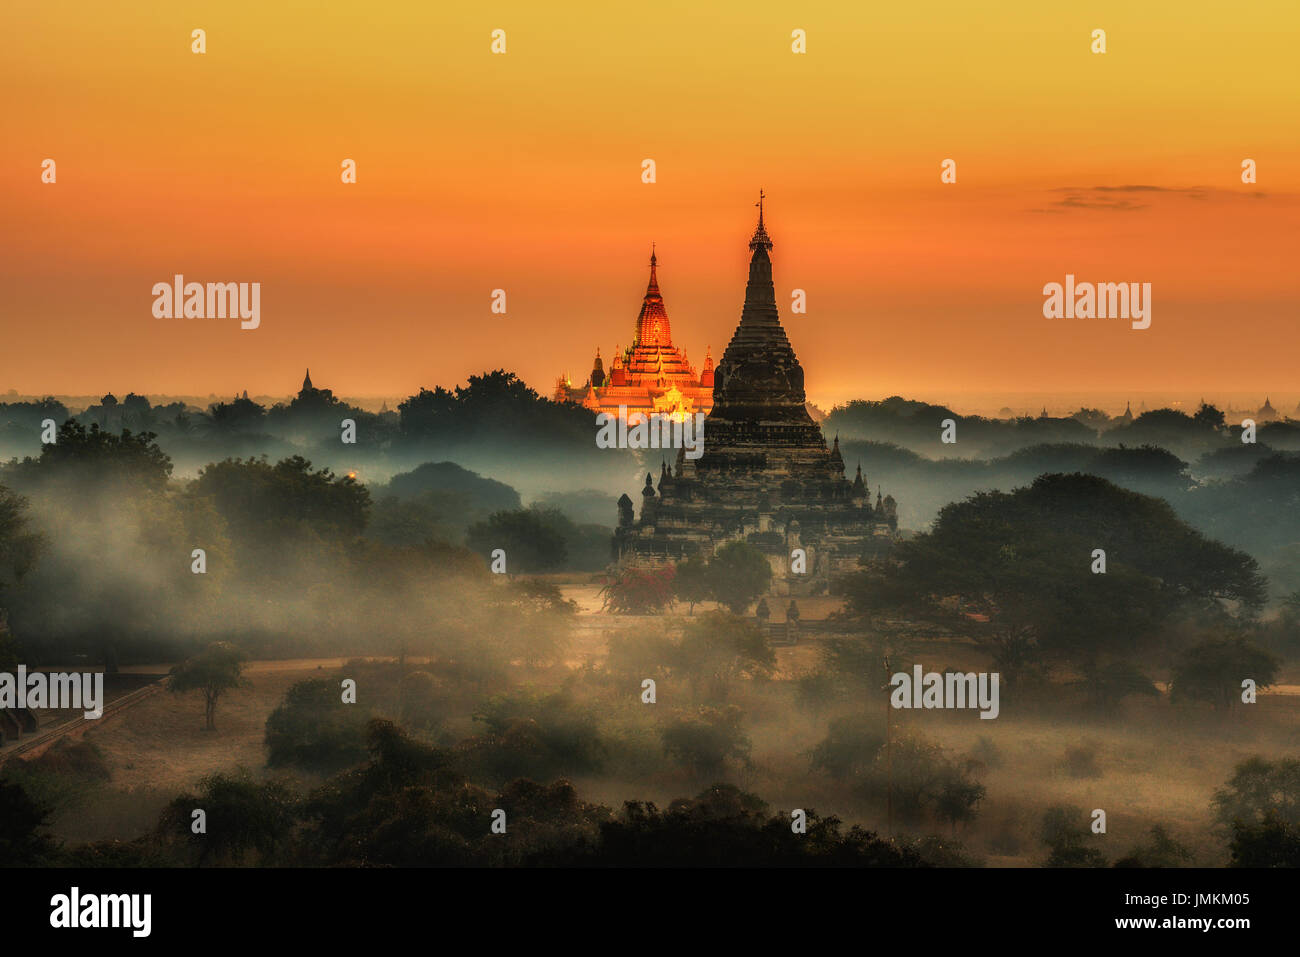 Scenic sunrise above Bagan in Myanmar. Bagan is an ancient city with thousands of historic buddhist temples and stupas. - Stock Image